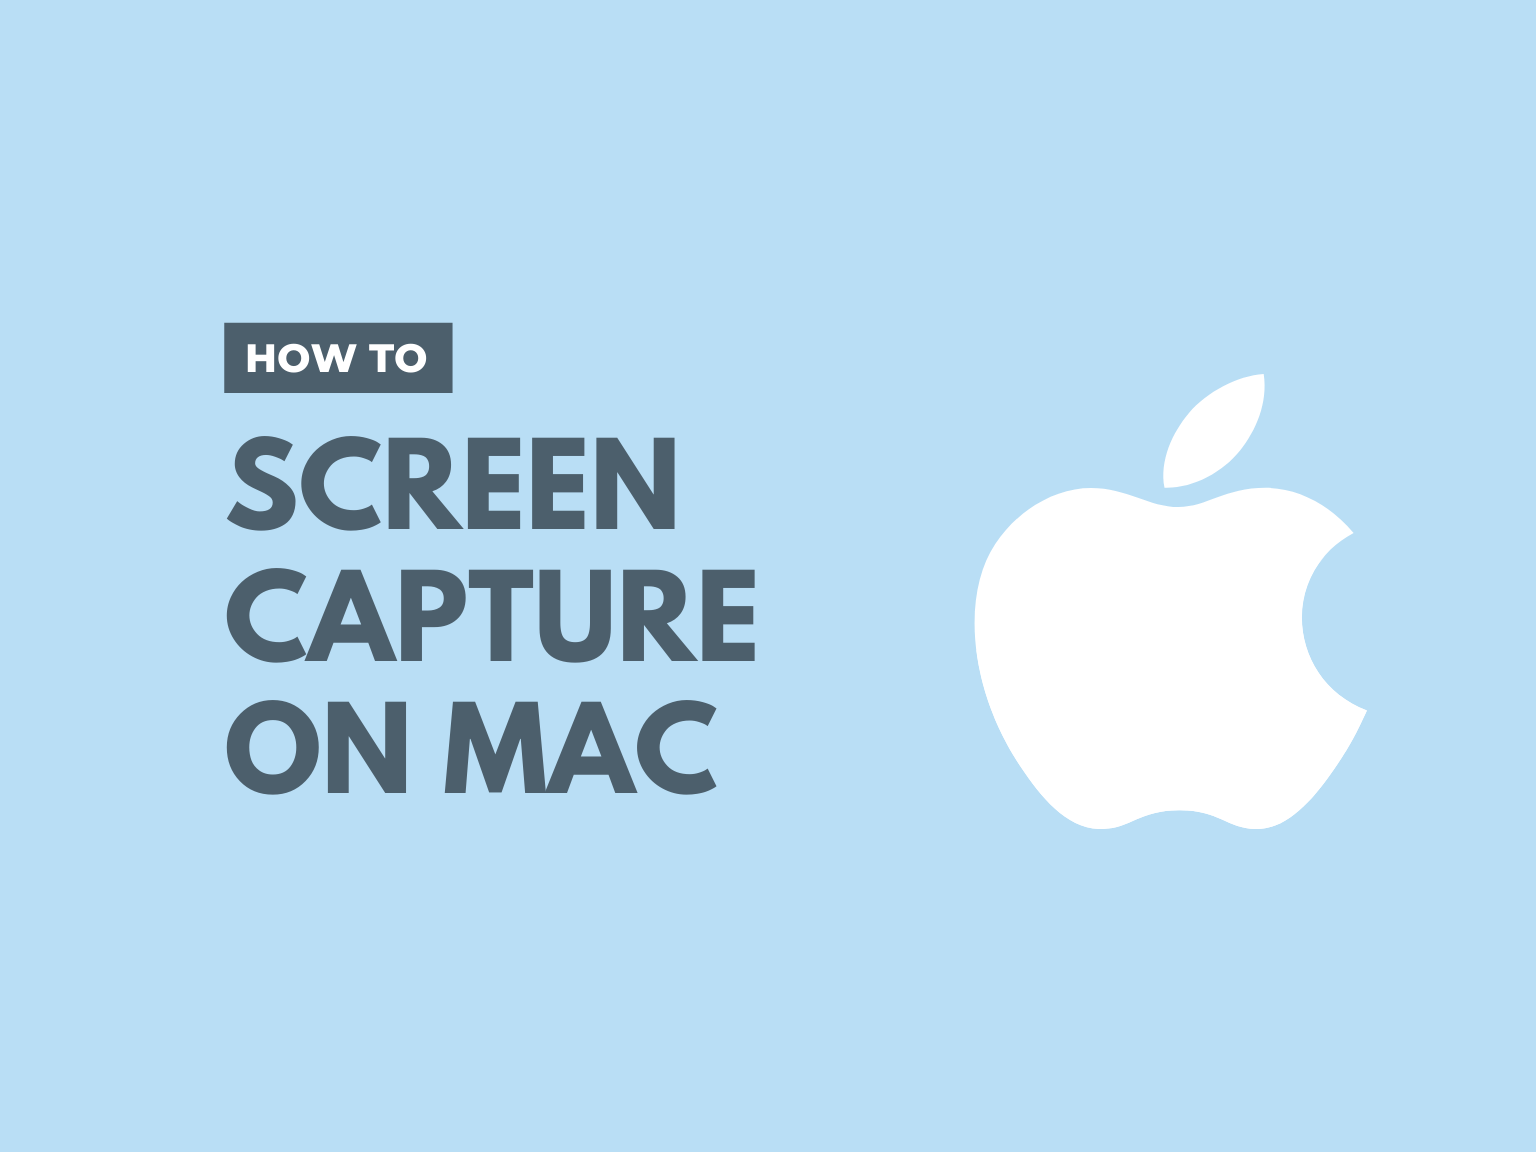 How to Screen Capture on Mac